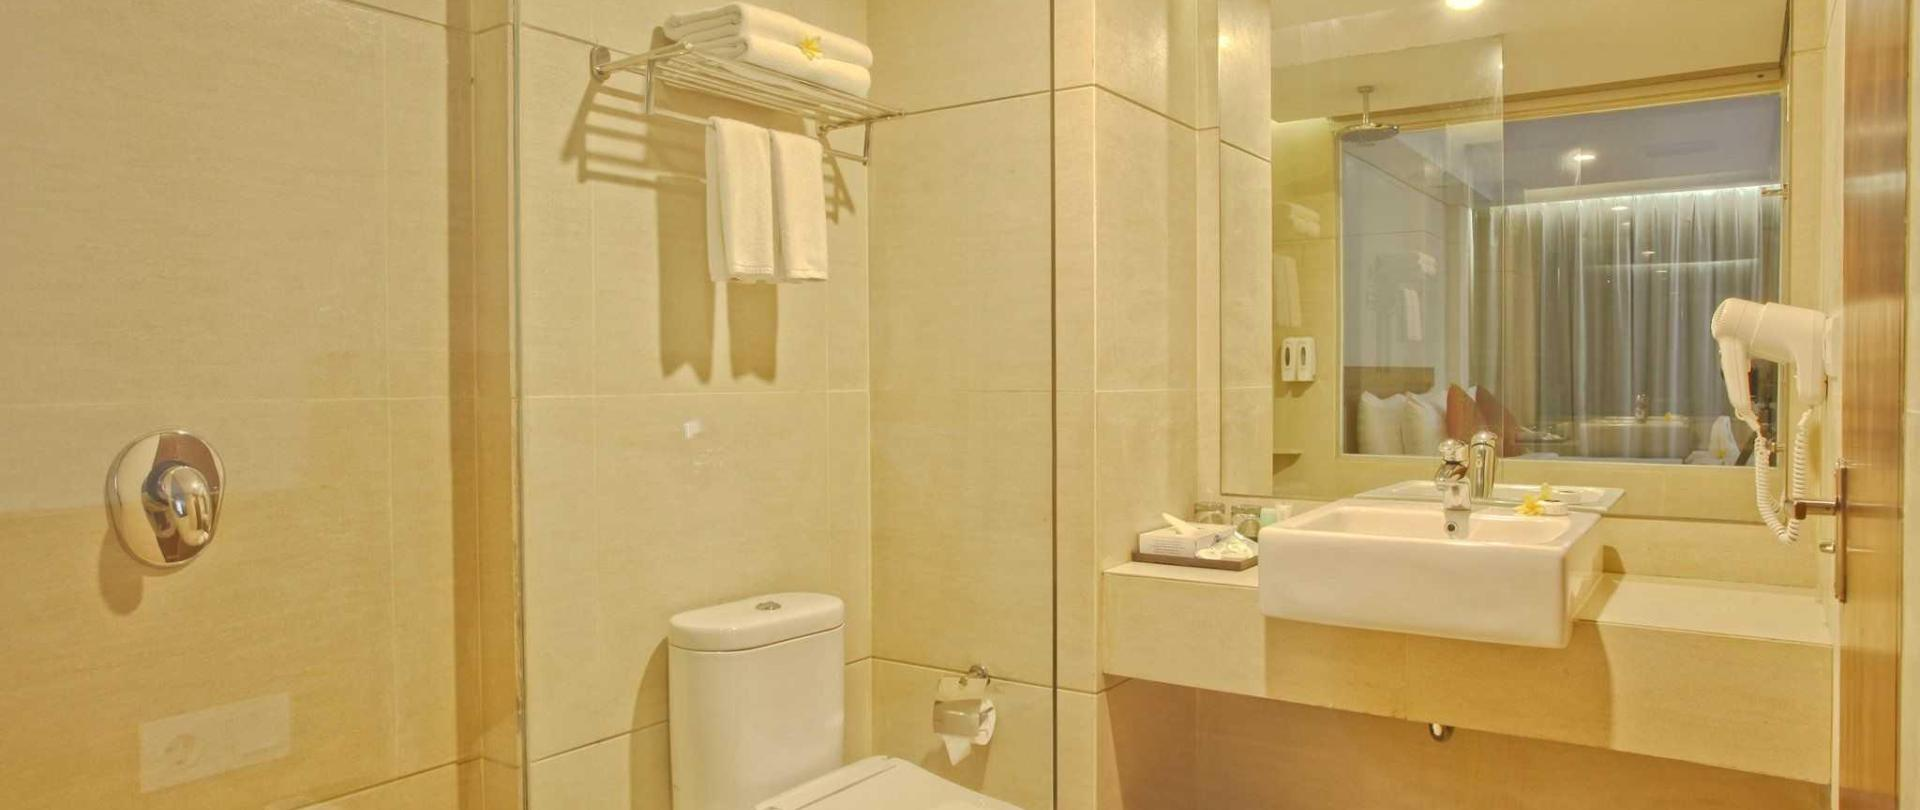 bathroom-deluxe-1.jpg